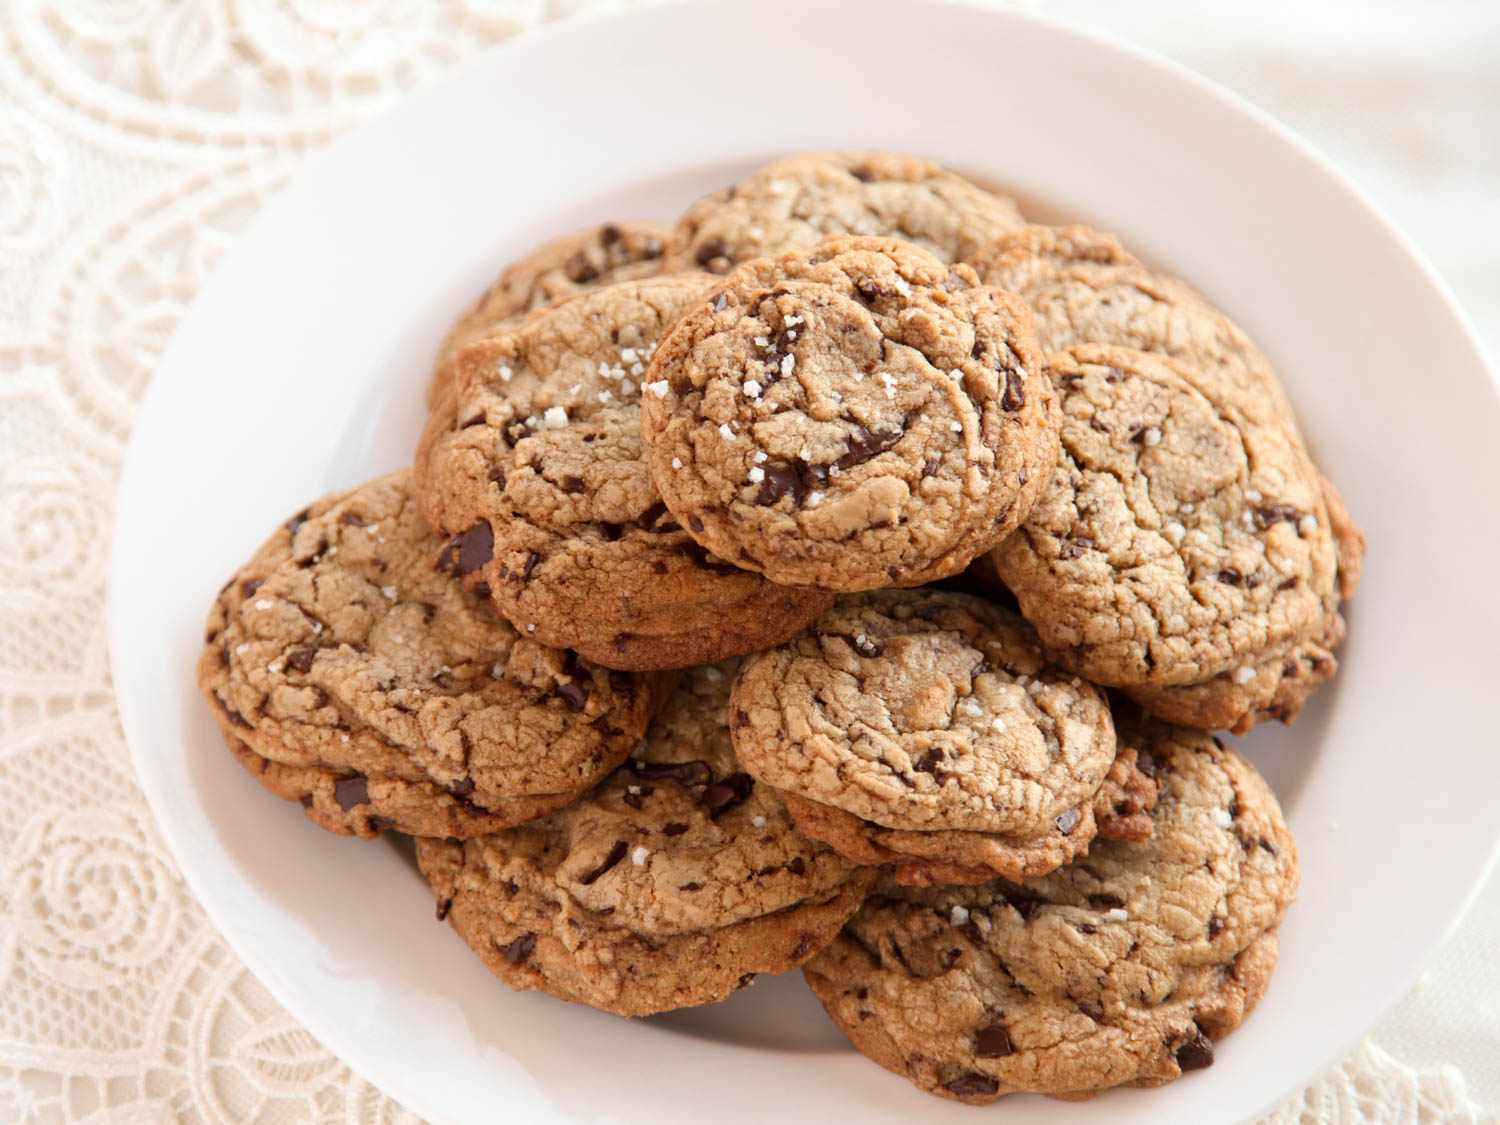 A pile of salted chocolate chip cookies on a white plate, sitting on a lace background.